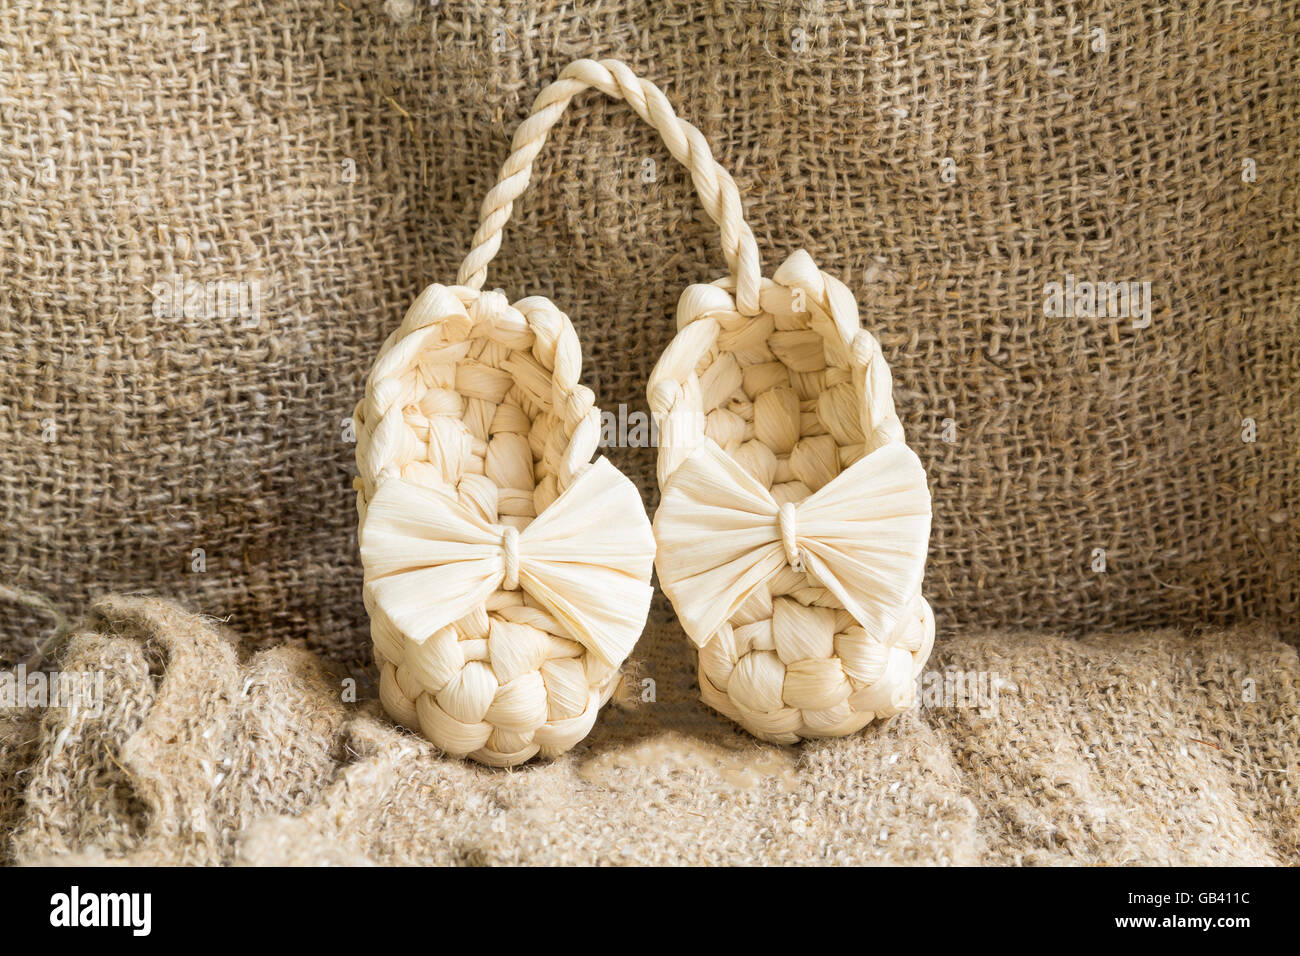 Old Russian sandals made of bark - Stock Image